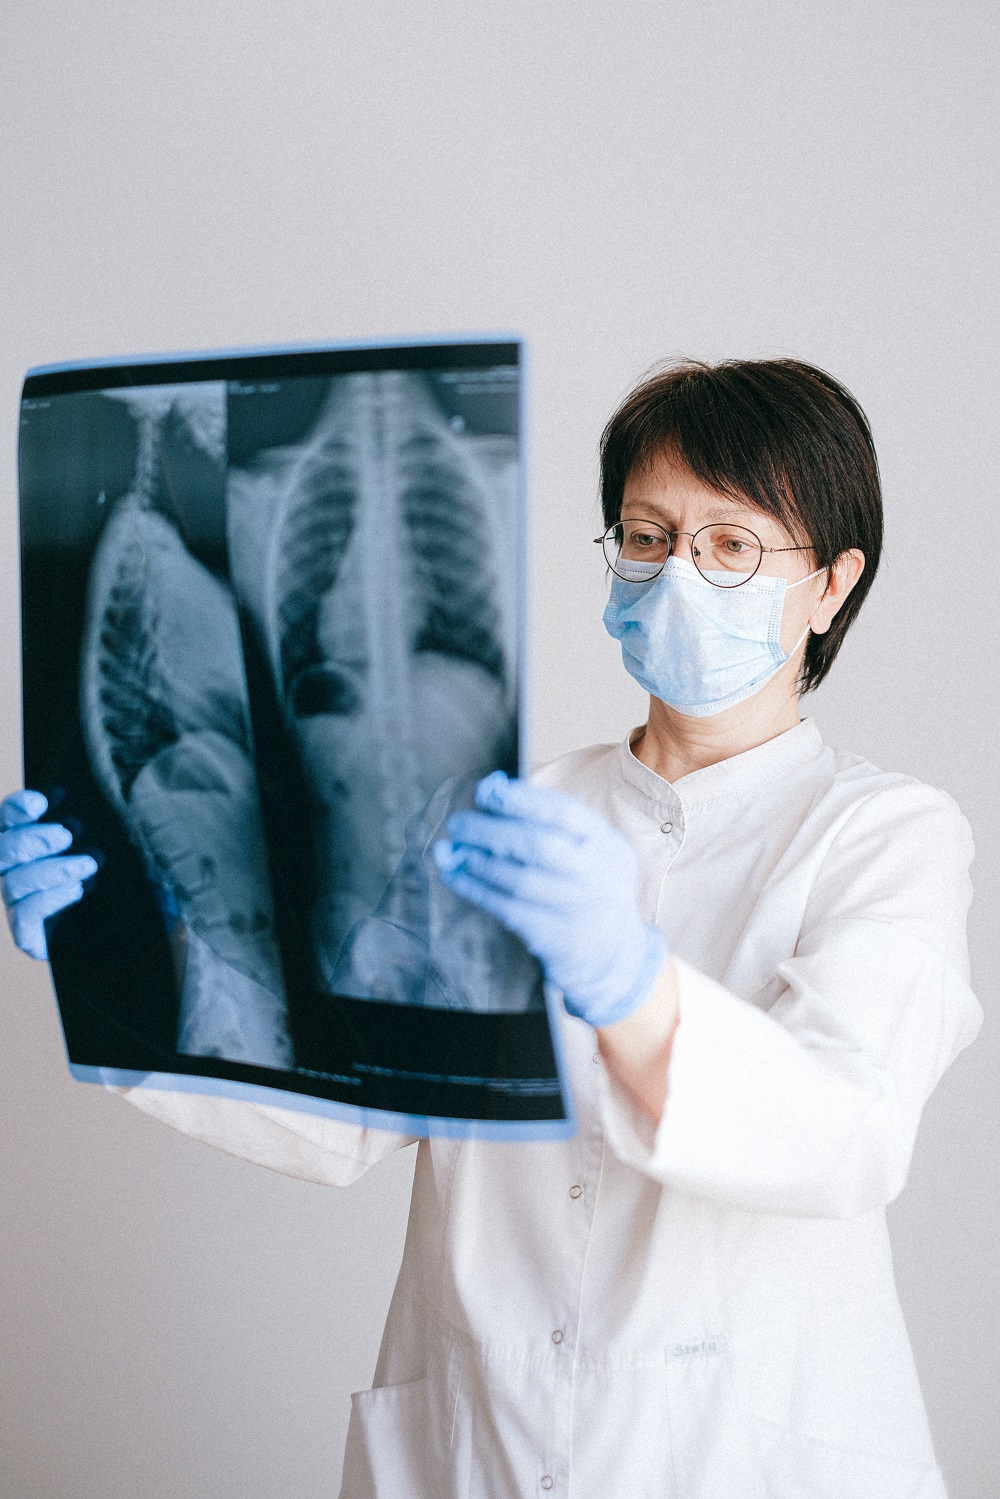 Health experts are calling for more partnerships between private and public health sectors following a drop in turn up rates for cancer screening amidst the Covid-19 pandemic. — Picture from Pexels.com